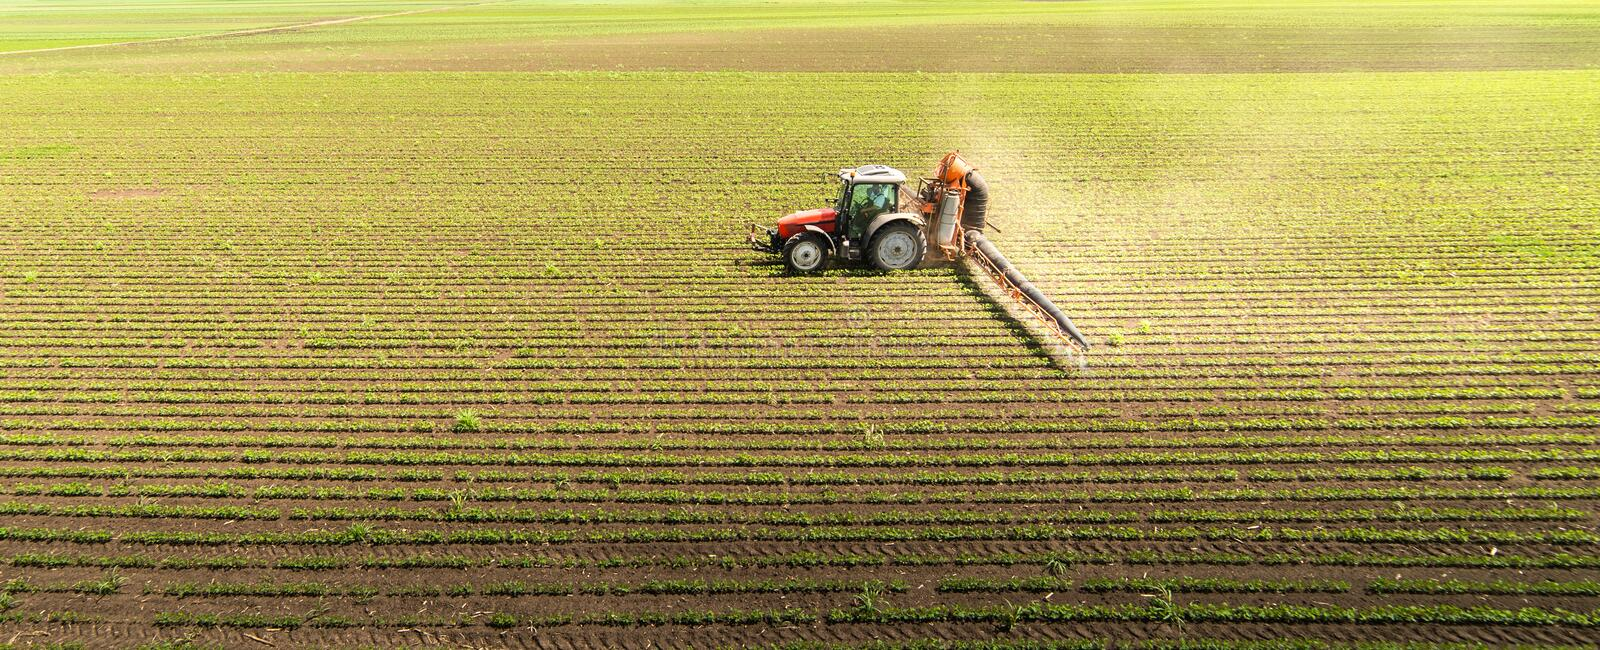 Tractor spraying soybean field royalty free stock images